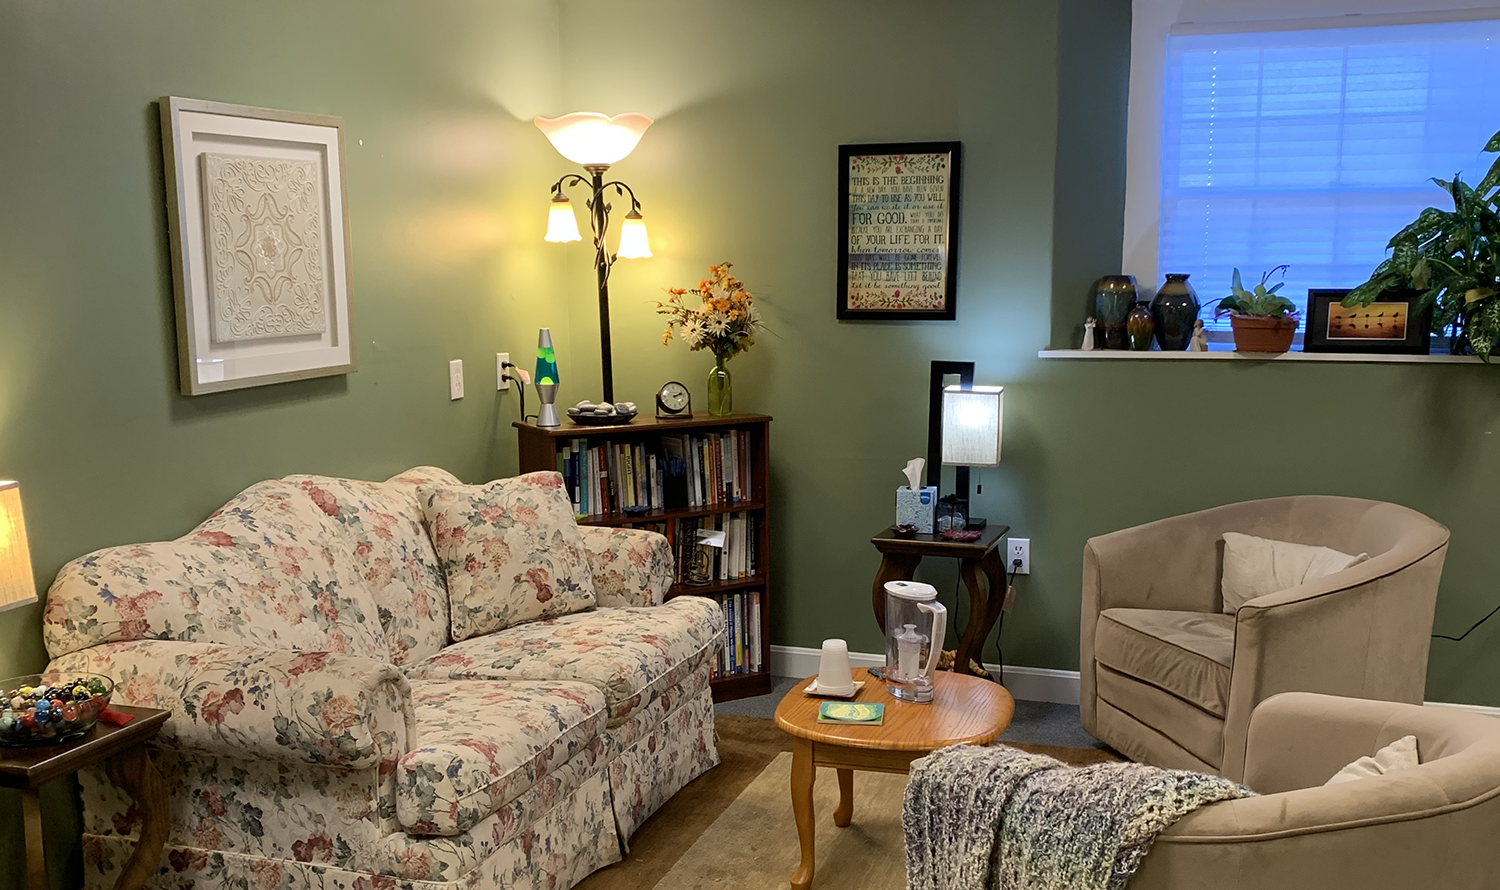 One of the therapy offices.